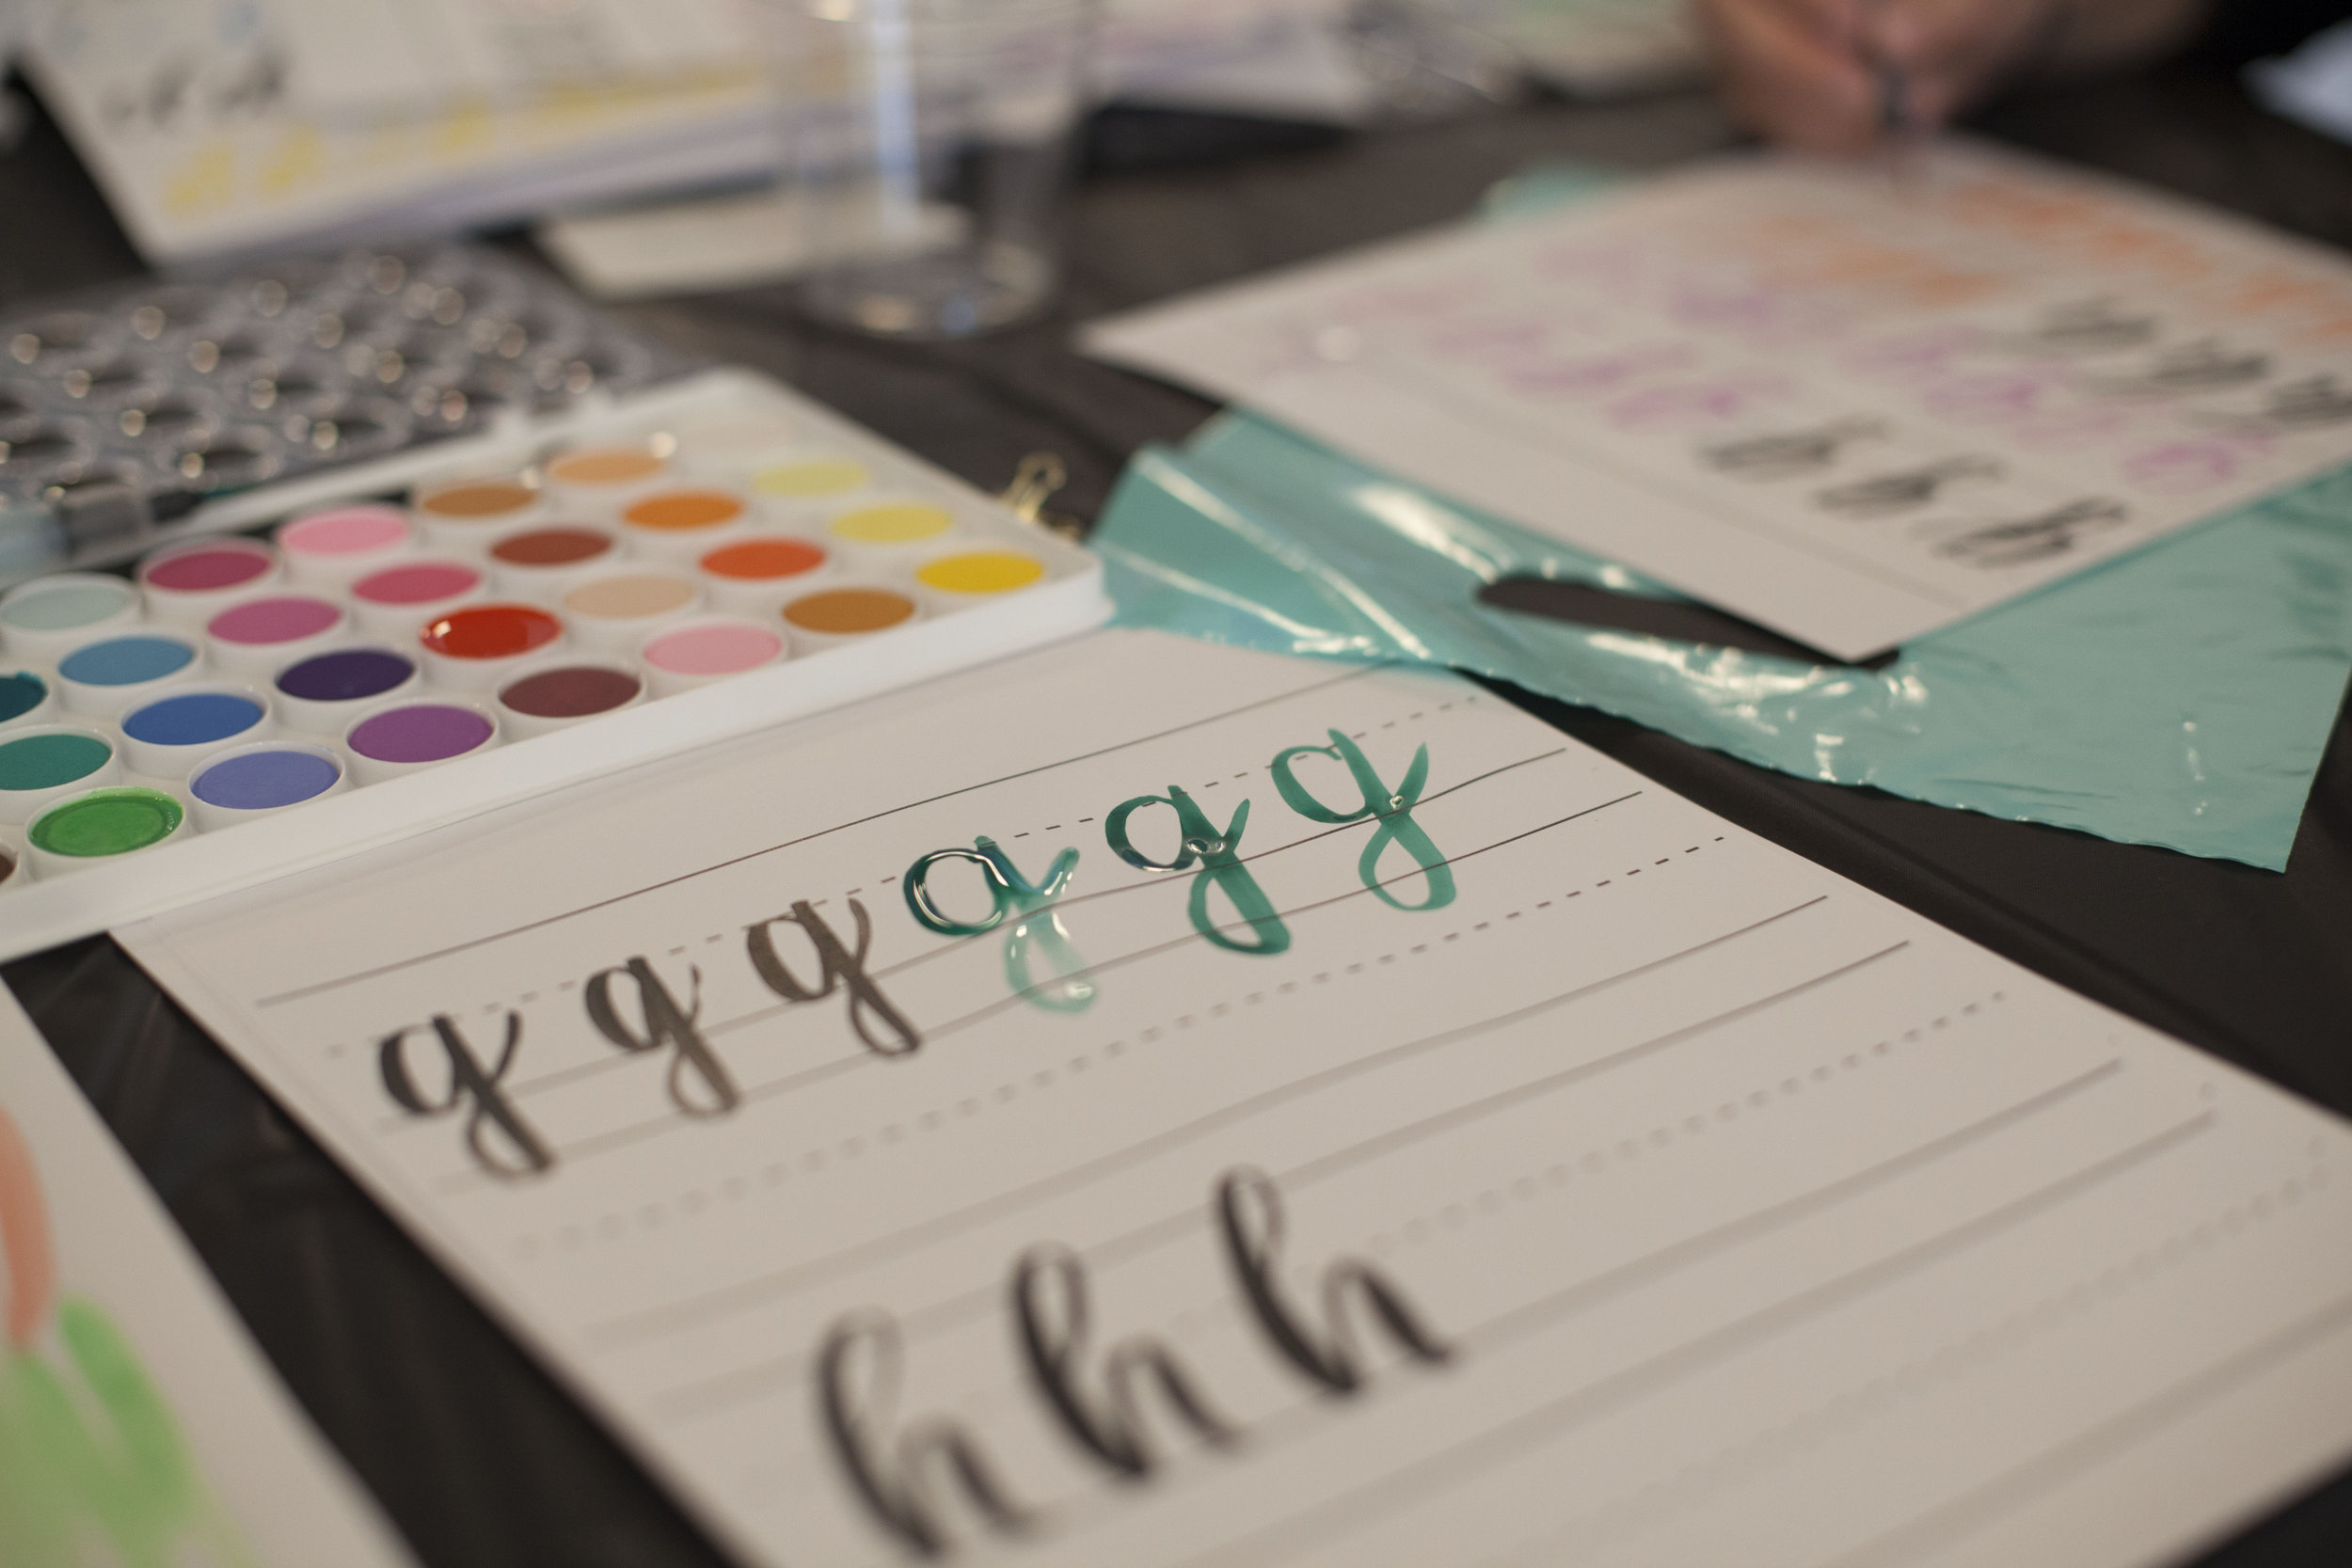 Day 62 - Calligraphy Workshop